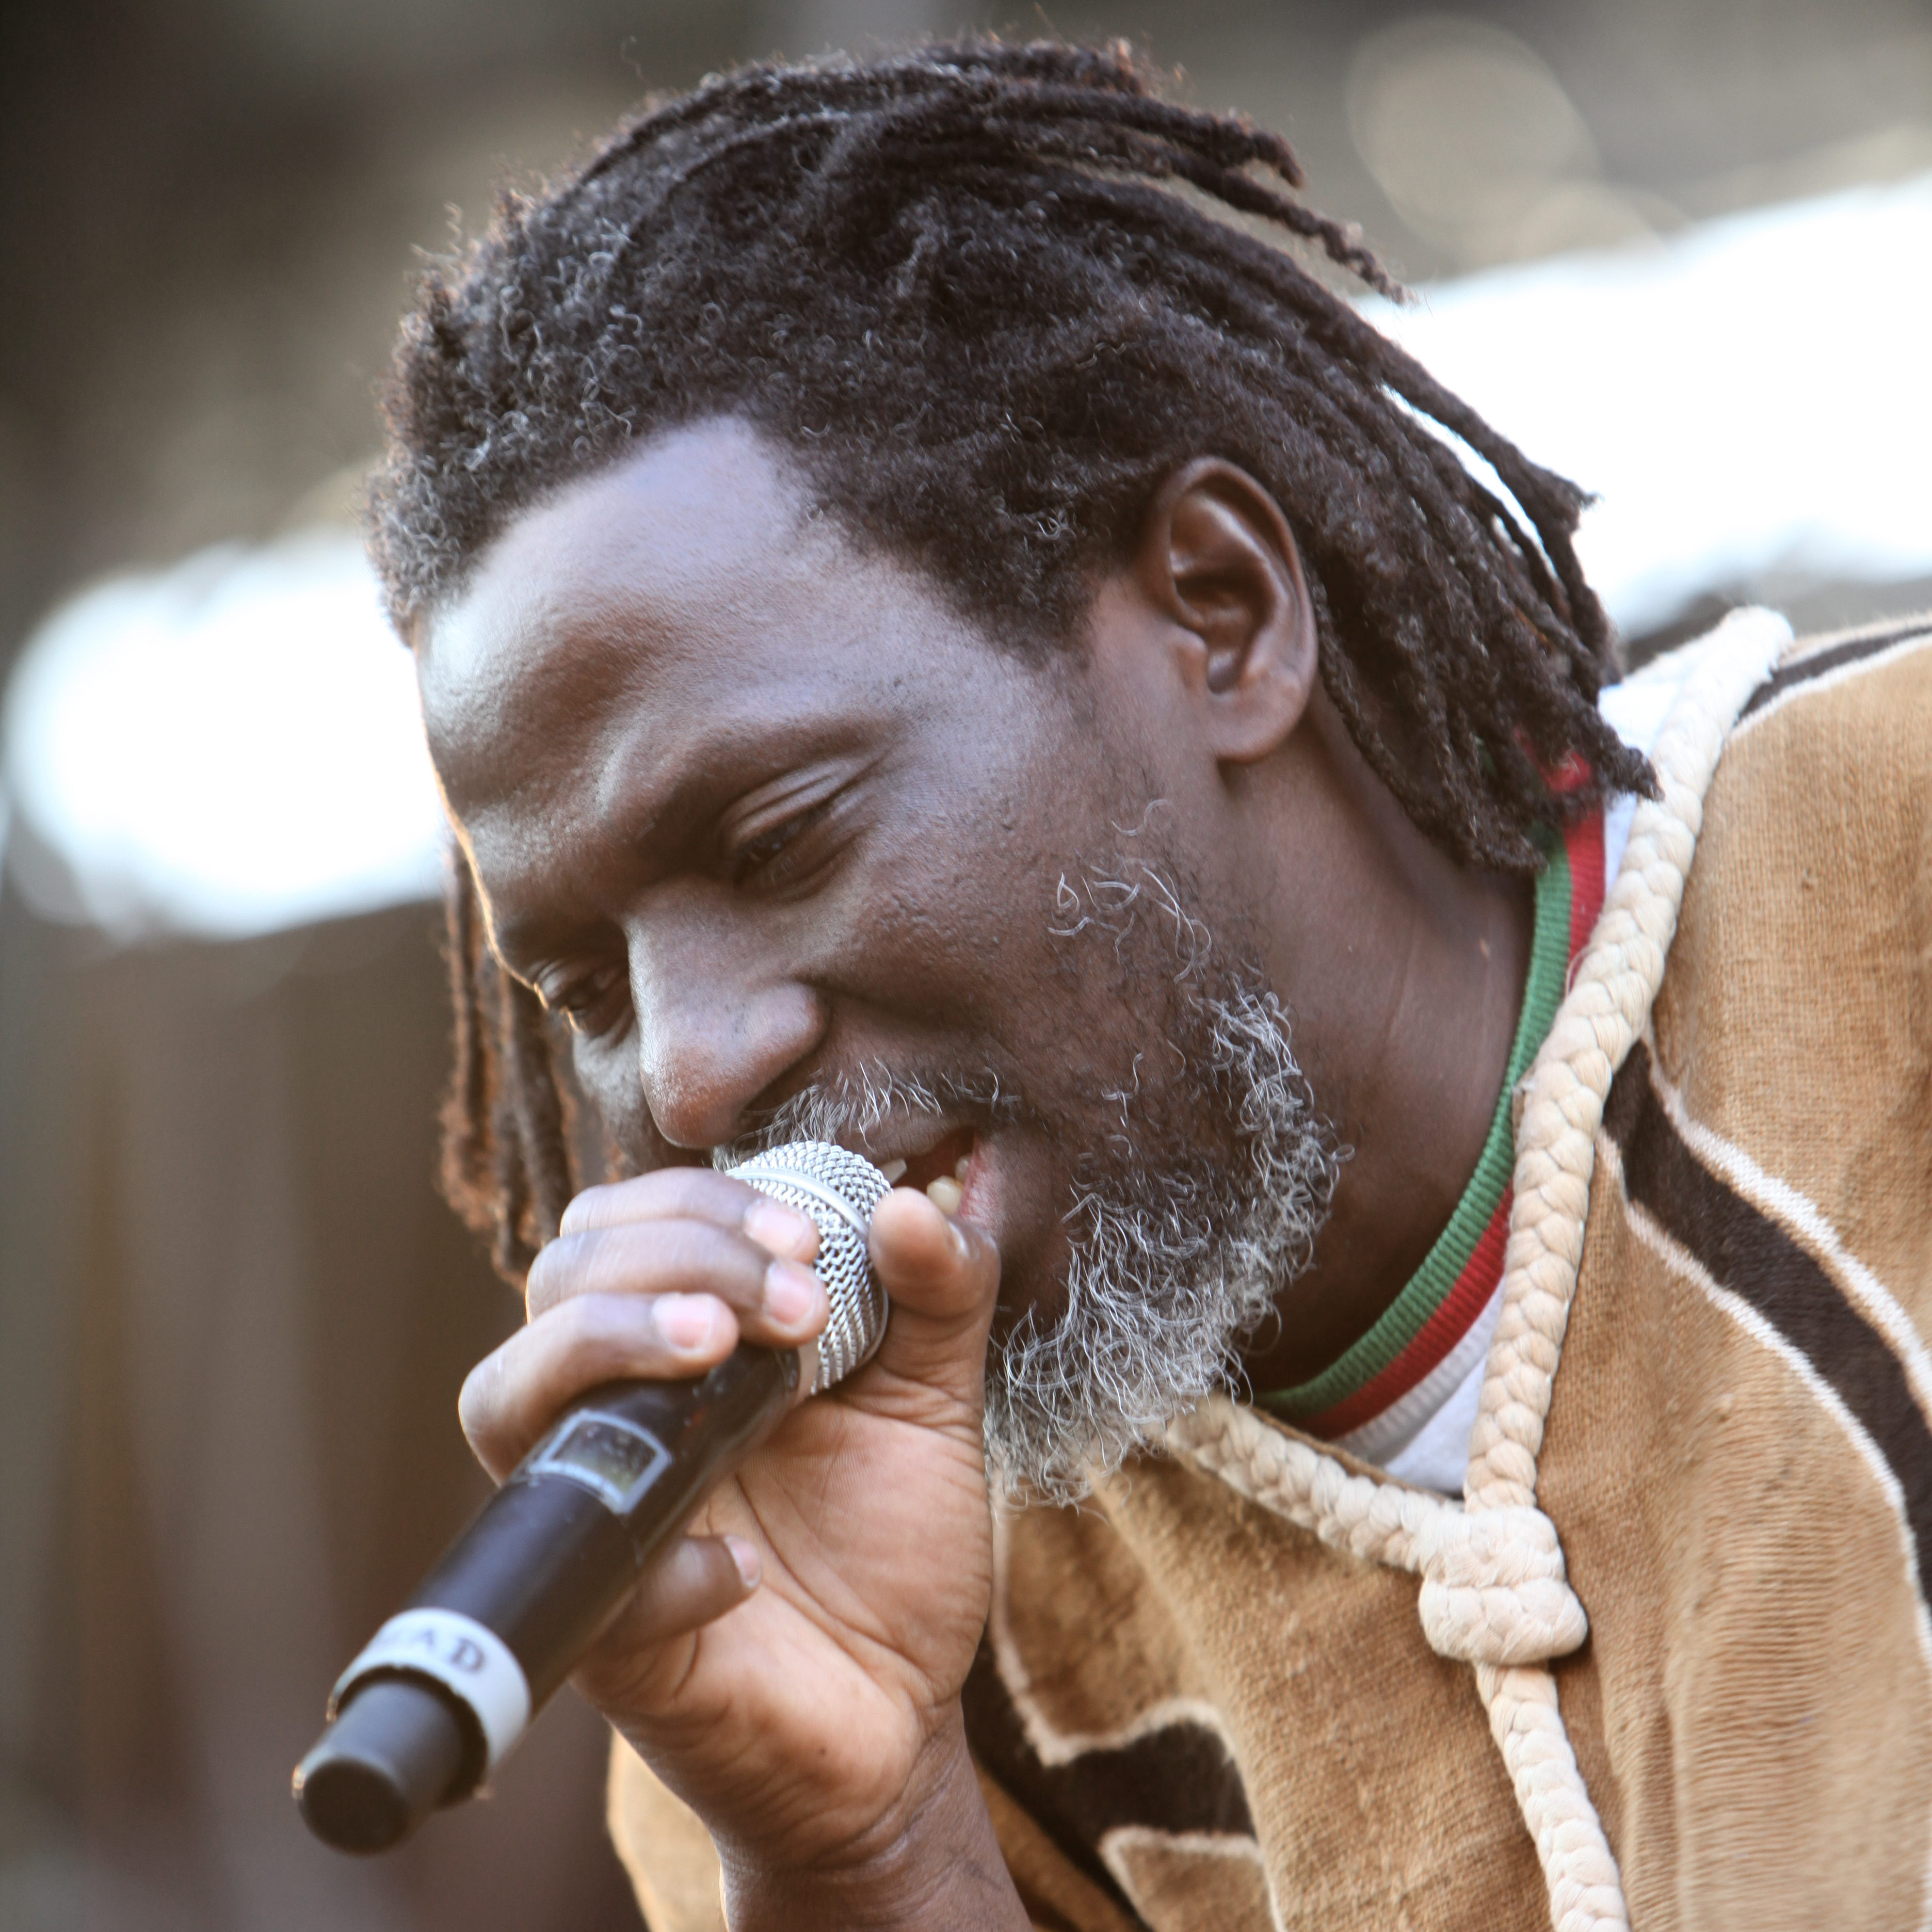 Tiken jah fakoly pictures news information from the web - Tiken jah fakoly album coup de gueule ...